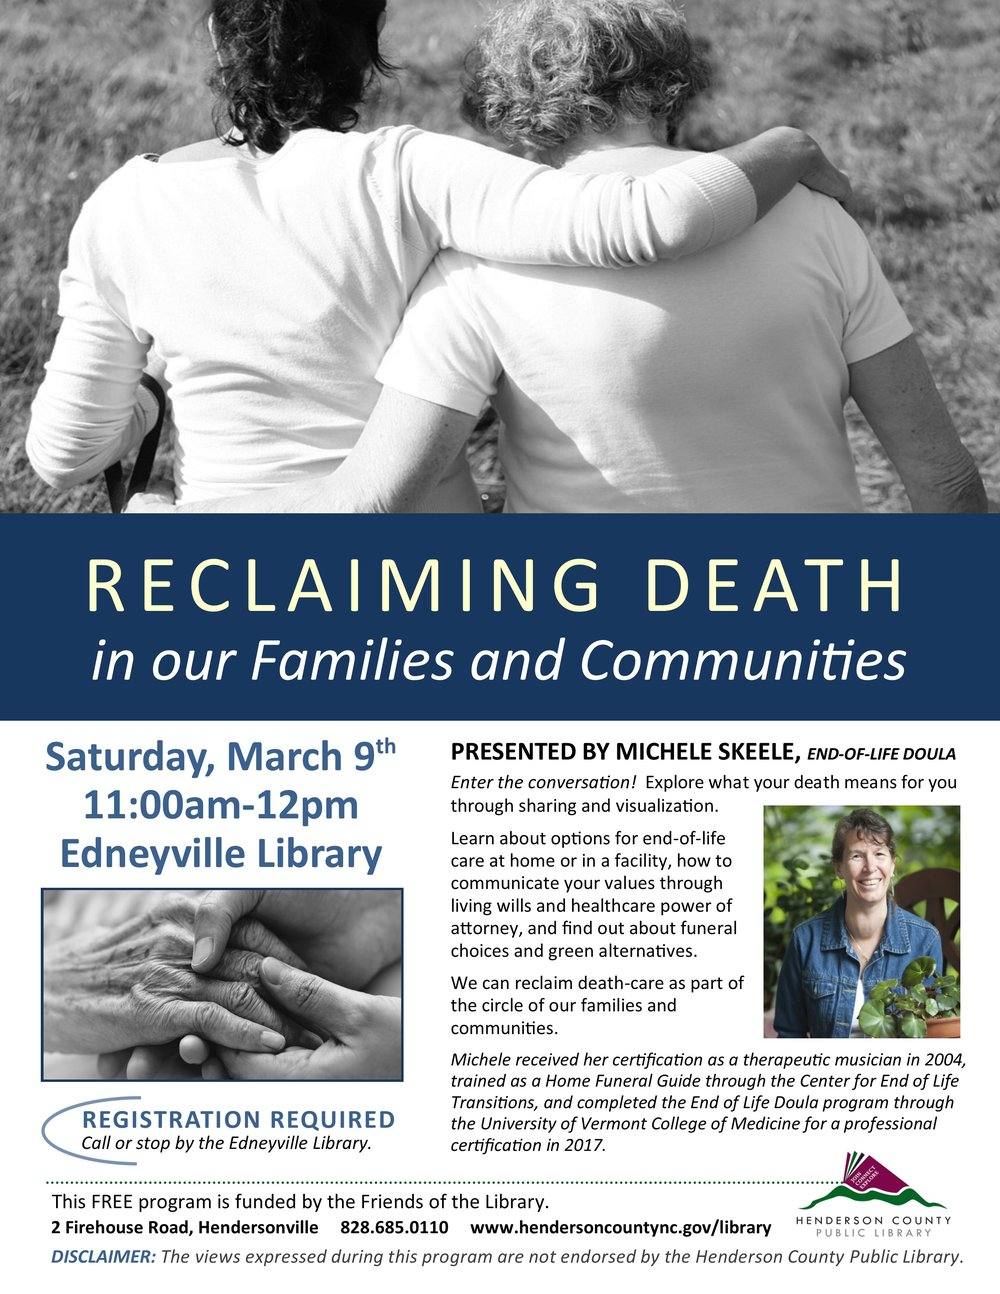 ED- Reclaiming Death in our Families and Communities.jpg